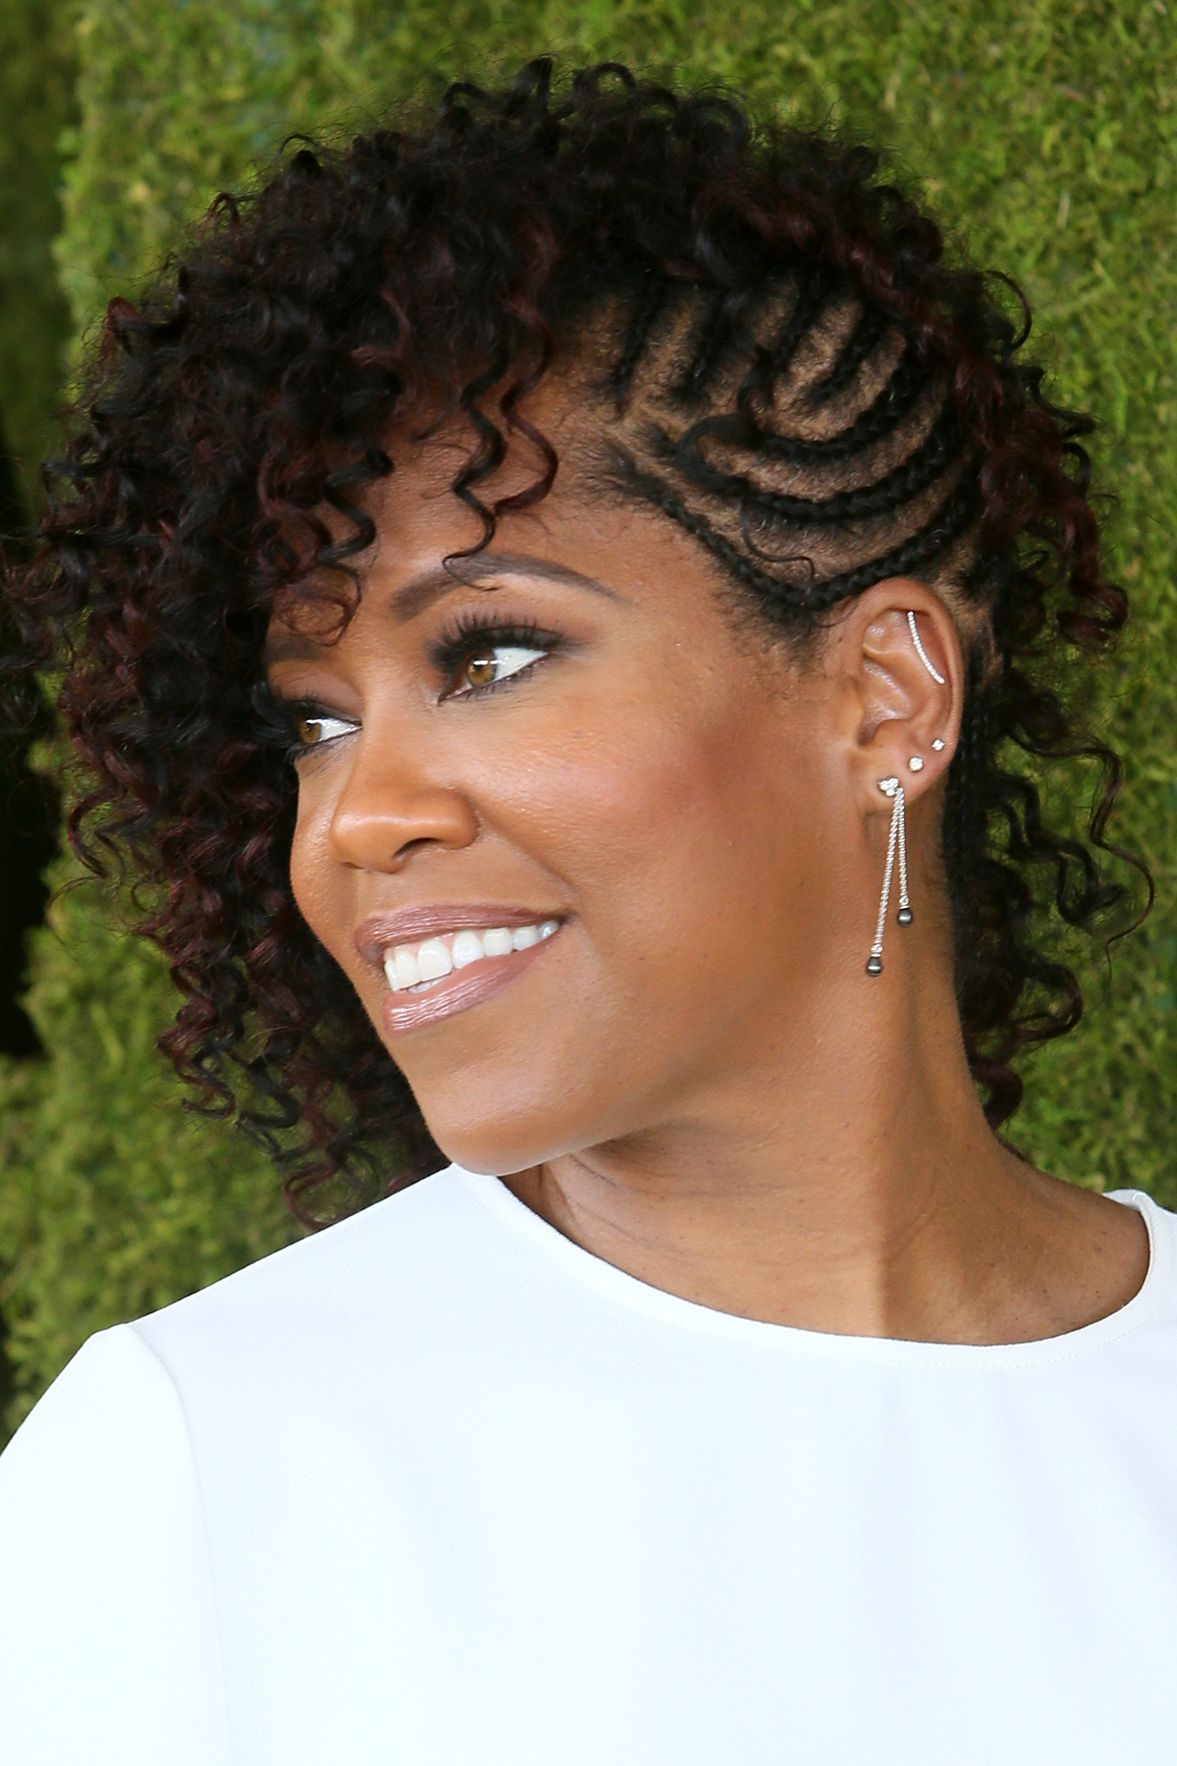 10+ Best Short Hairstyles for Black Women - Natural and Relaxed